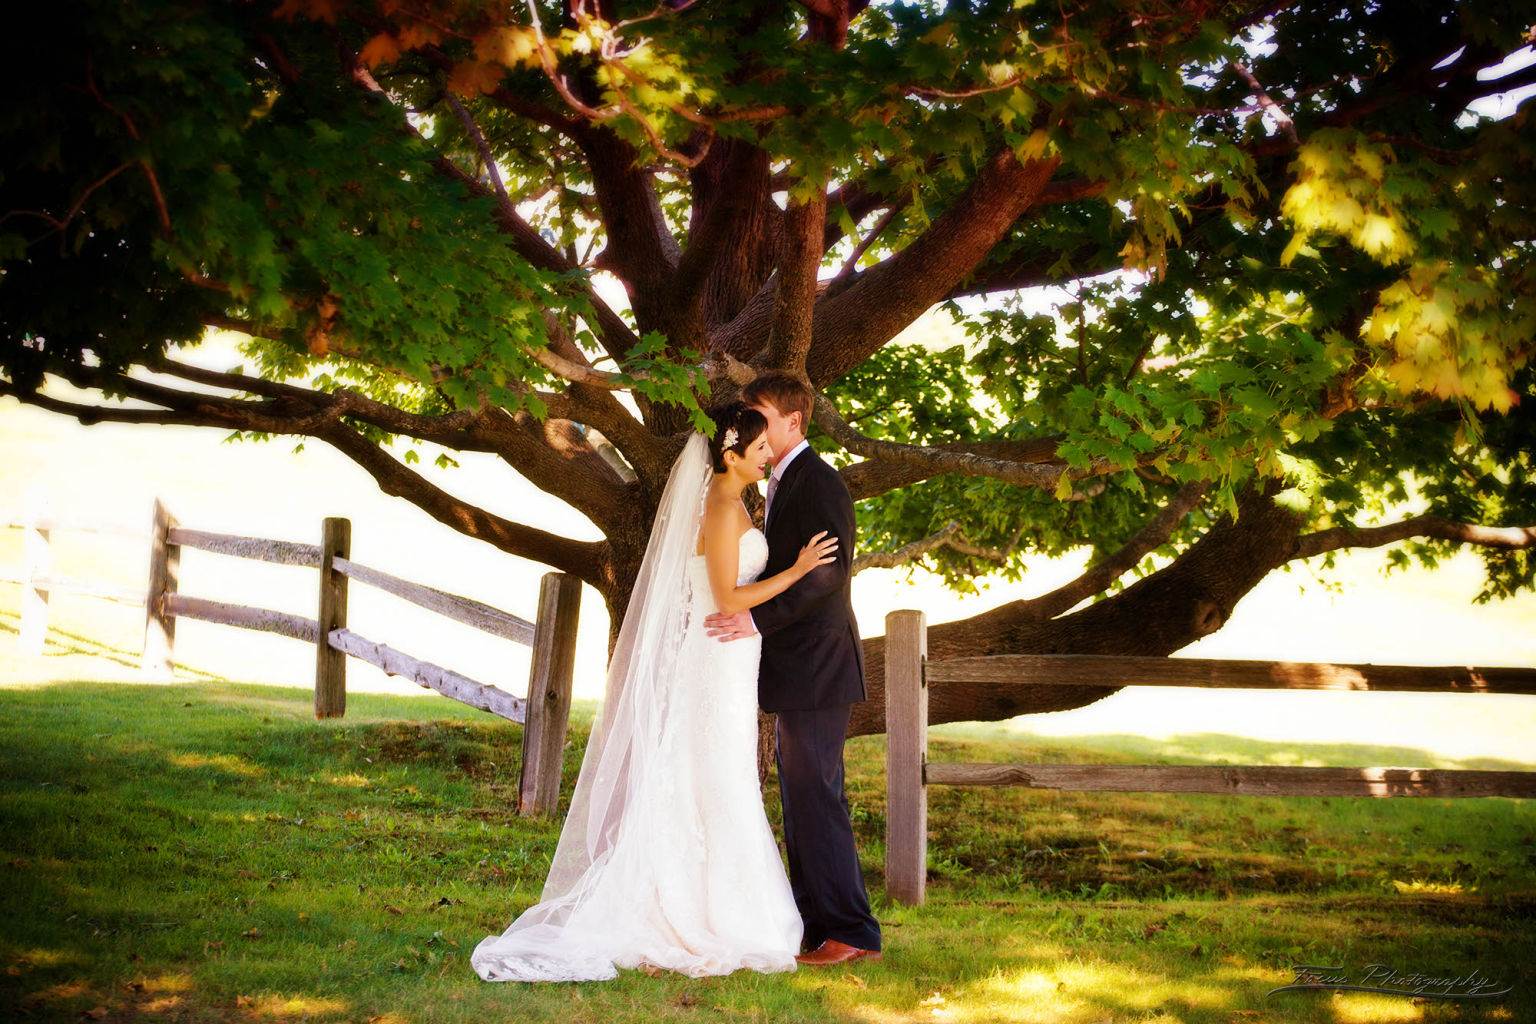 144-Maine-Wedding-Photography-MariahWill